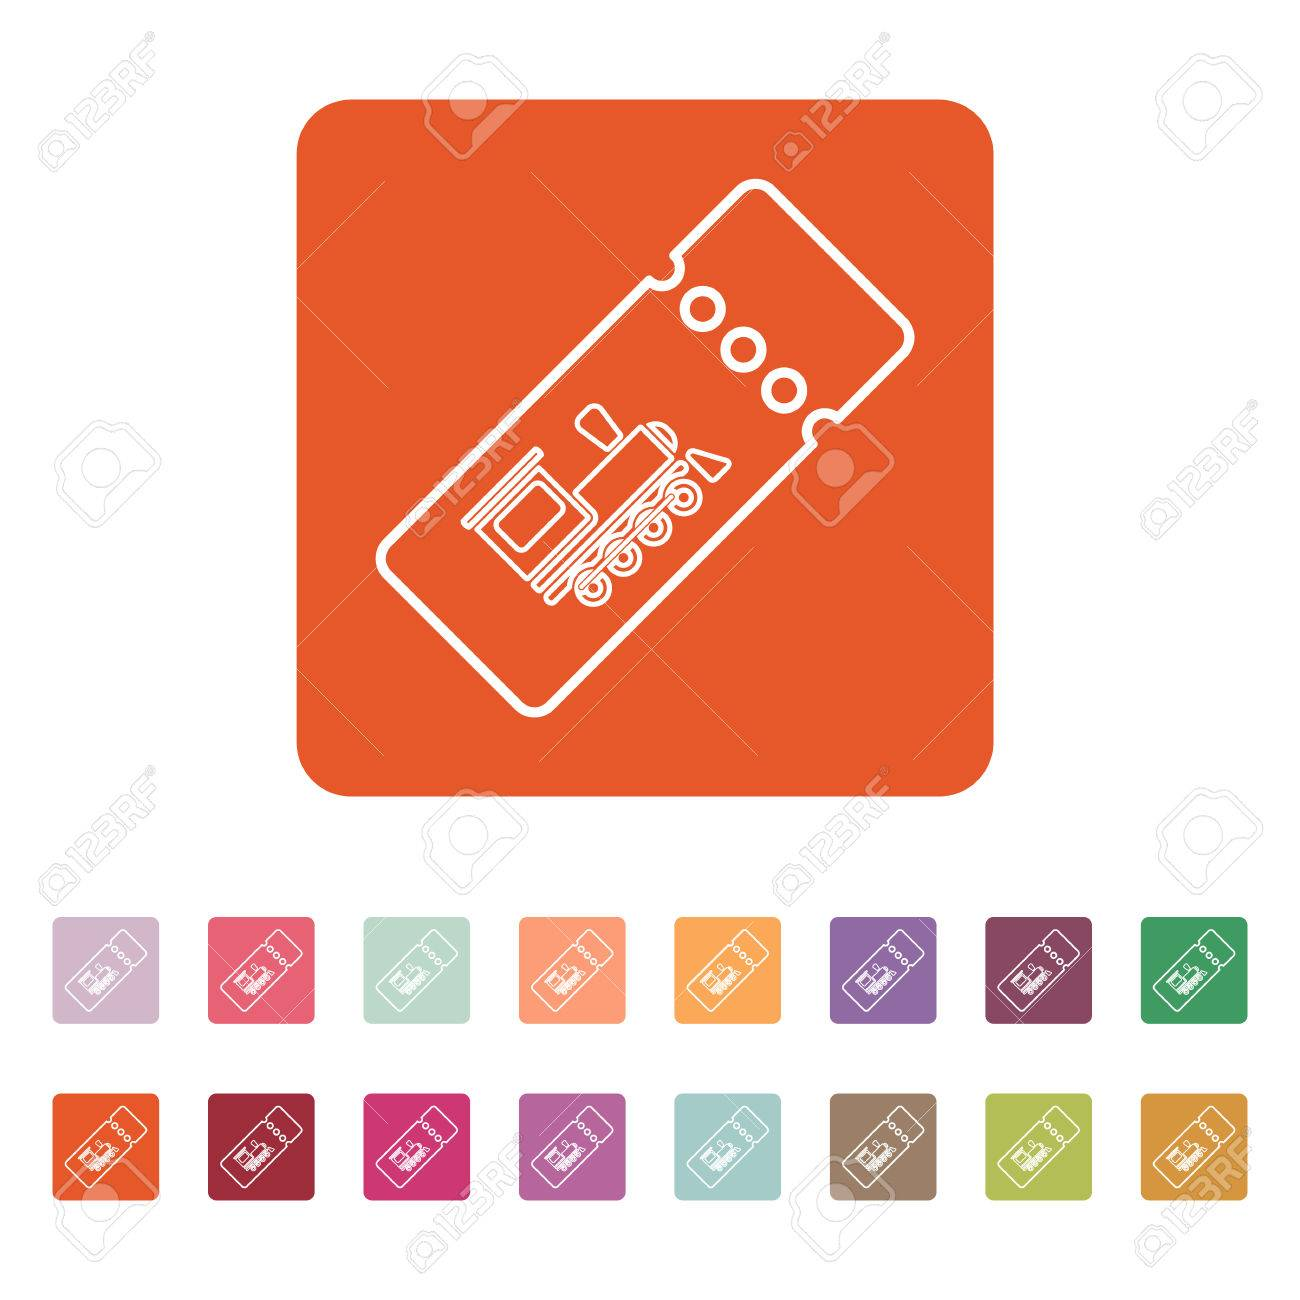 The Blank Train Ticket Icon Stock Vector